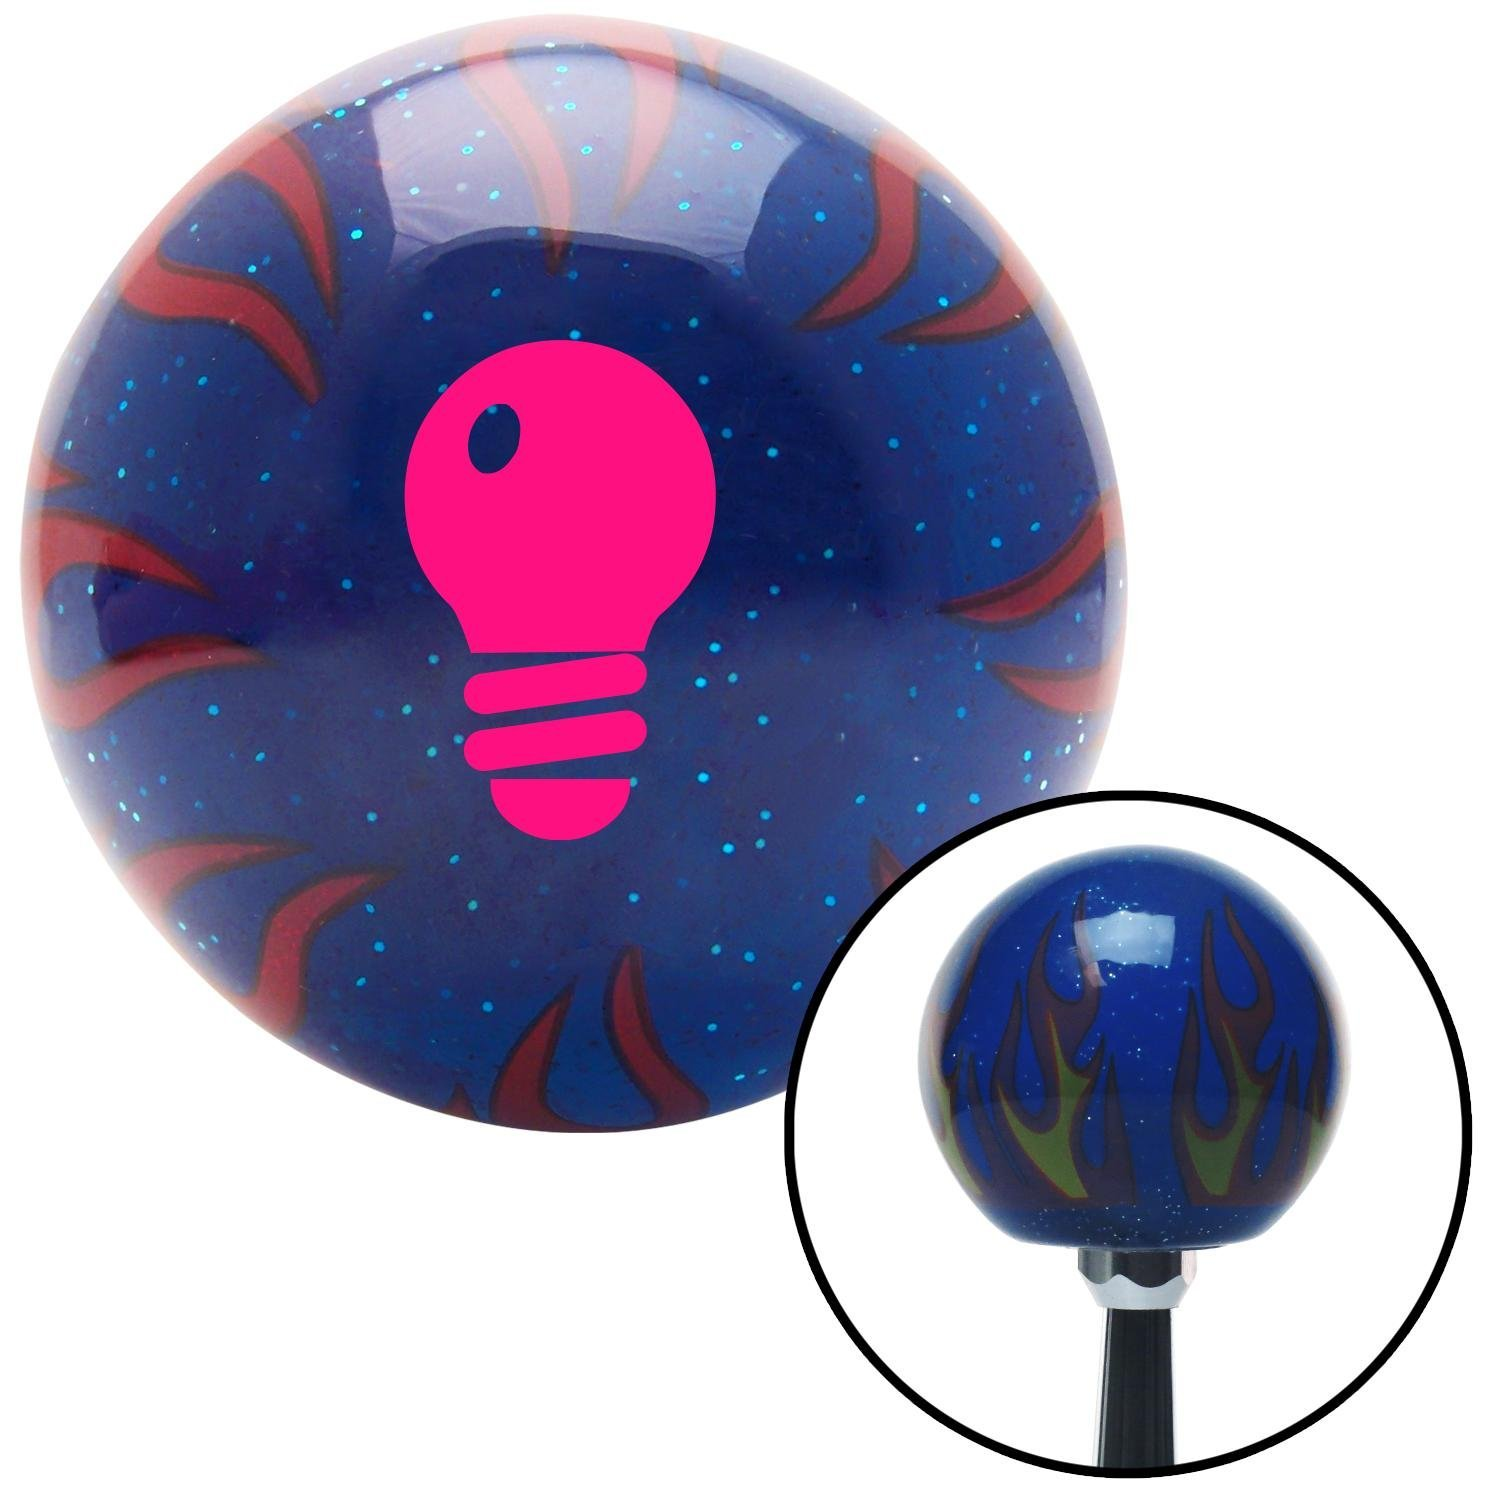 American Shifter 247017 Blue Flame Metal Flake Shift Knob with M16 x 1.5 Insert Pink Light Bulb